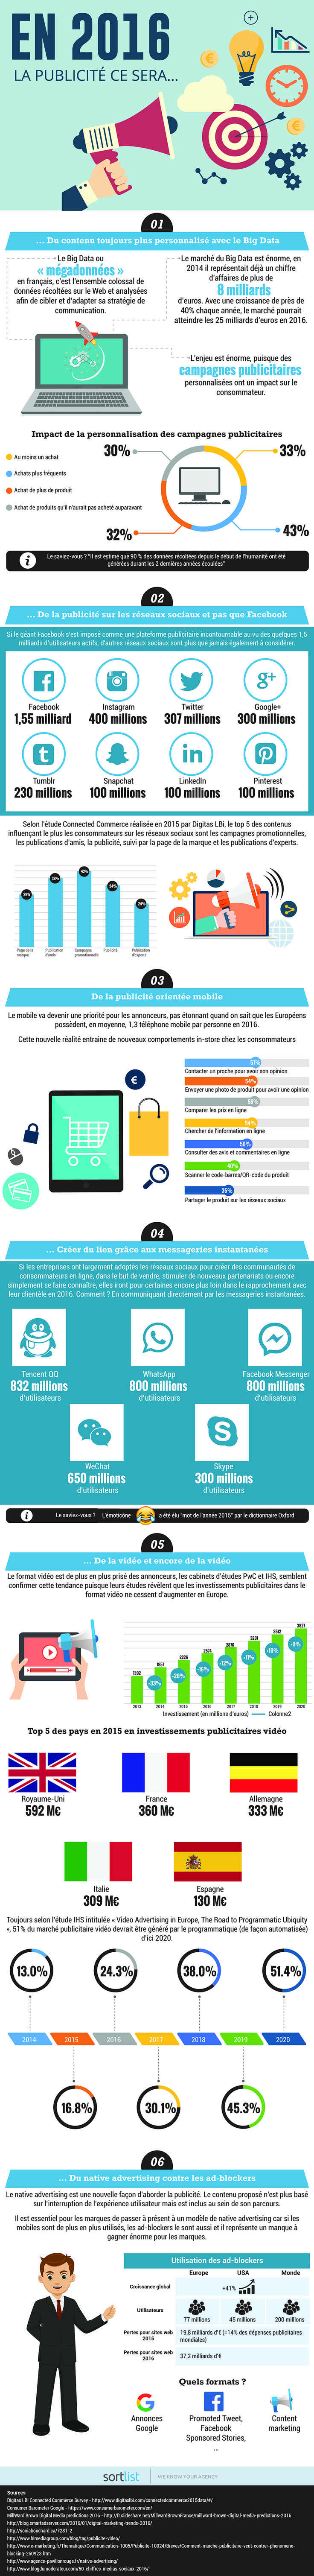 [Infographie] Prédictions Sur La Communication Des Marques en 2016 | Webmarketing & co'm